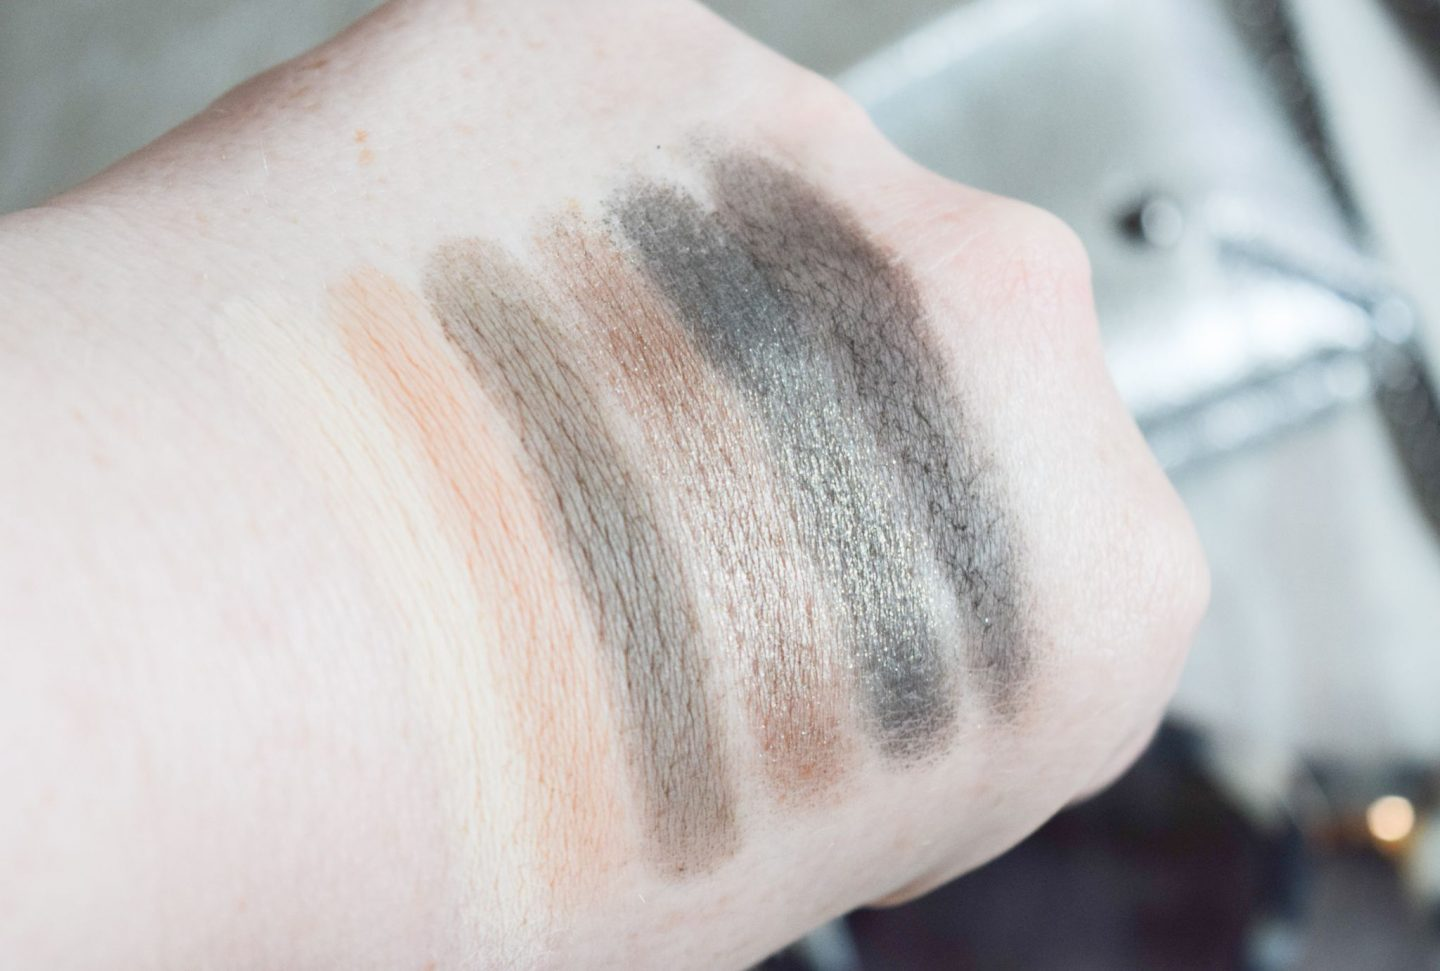 Bobbi Brown LE Camo Luxe Eye and Cheek Palette swatched